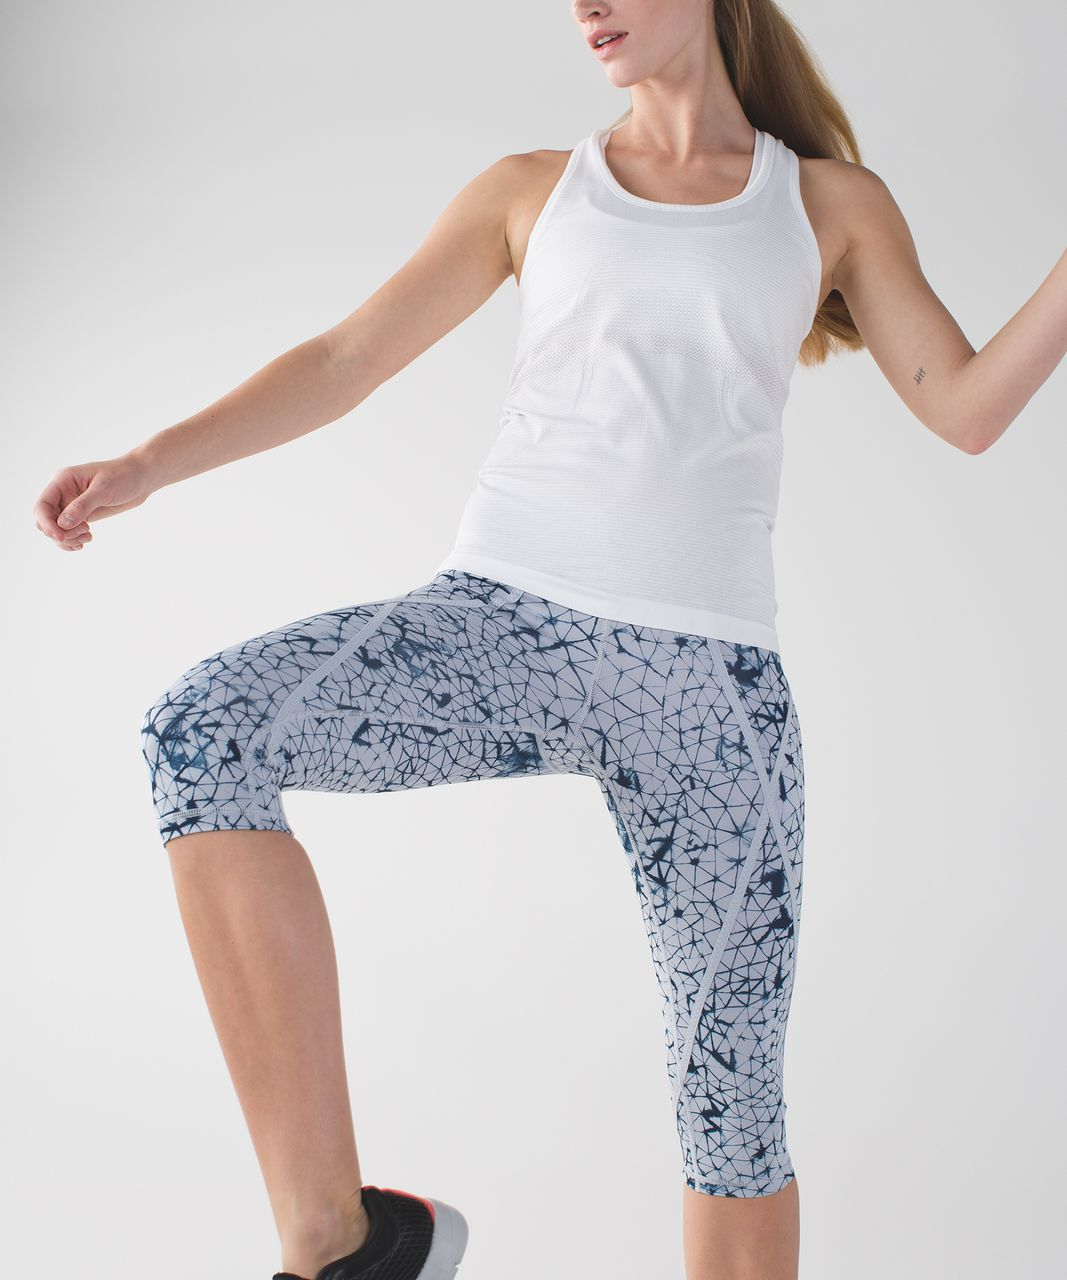 Lululemon Pedal Pace Crop - Star Crushed Silver Fox Deep Navy